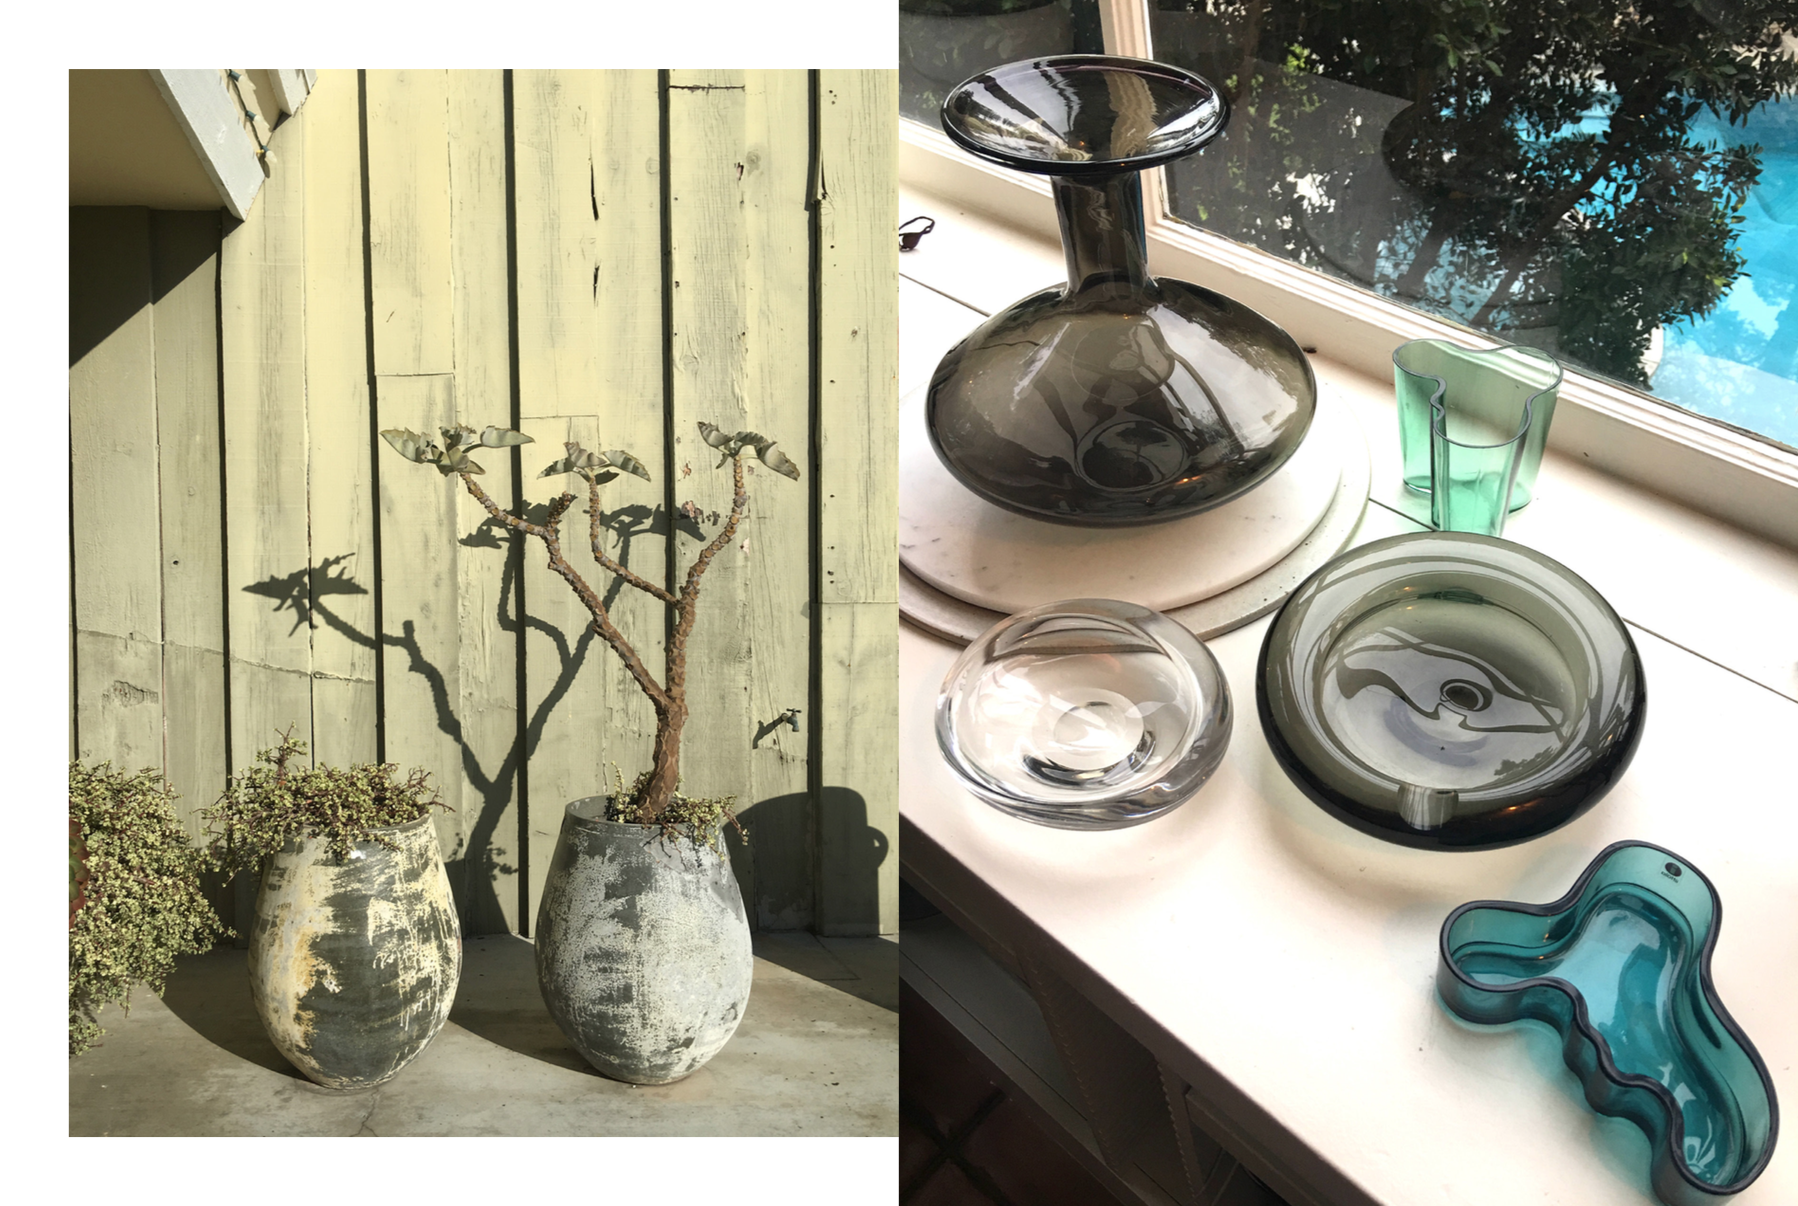 Photography: Marcus Hay, Left: Potted Plants at Dana Point, Right: Poolside glassware at home